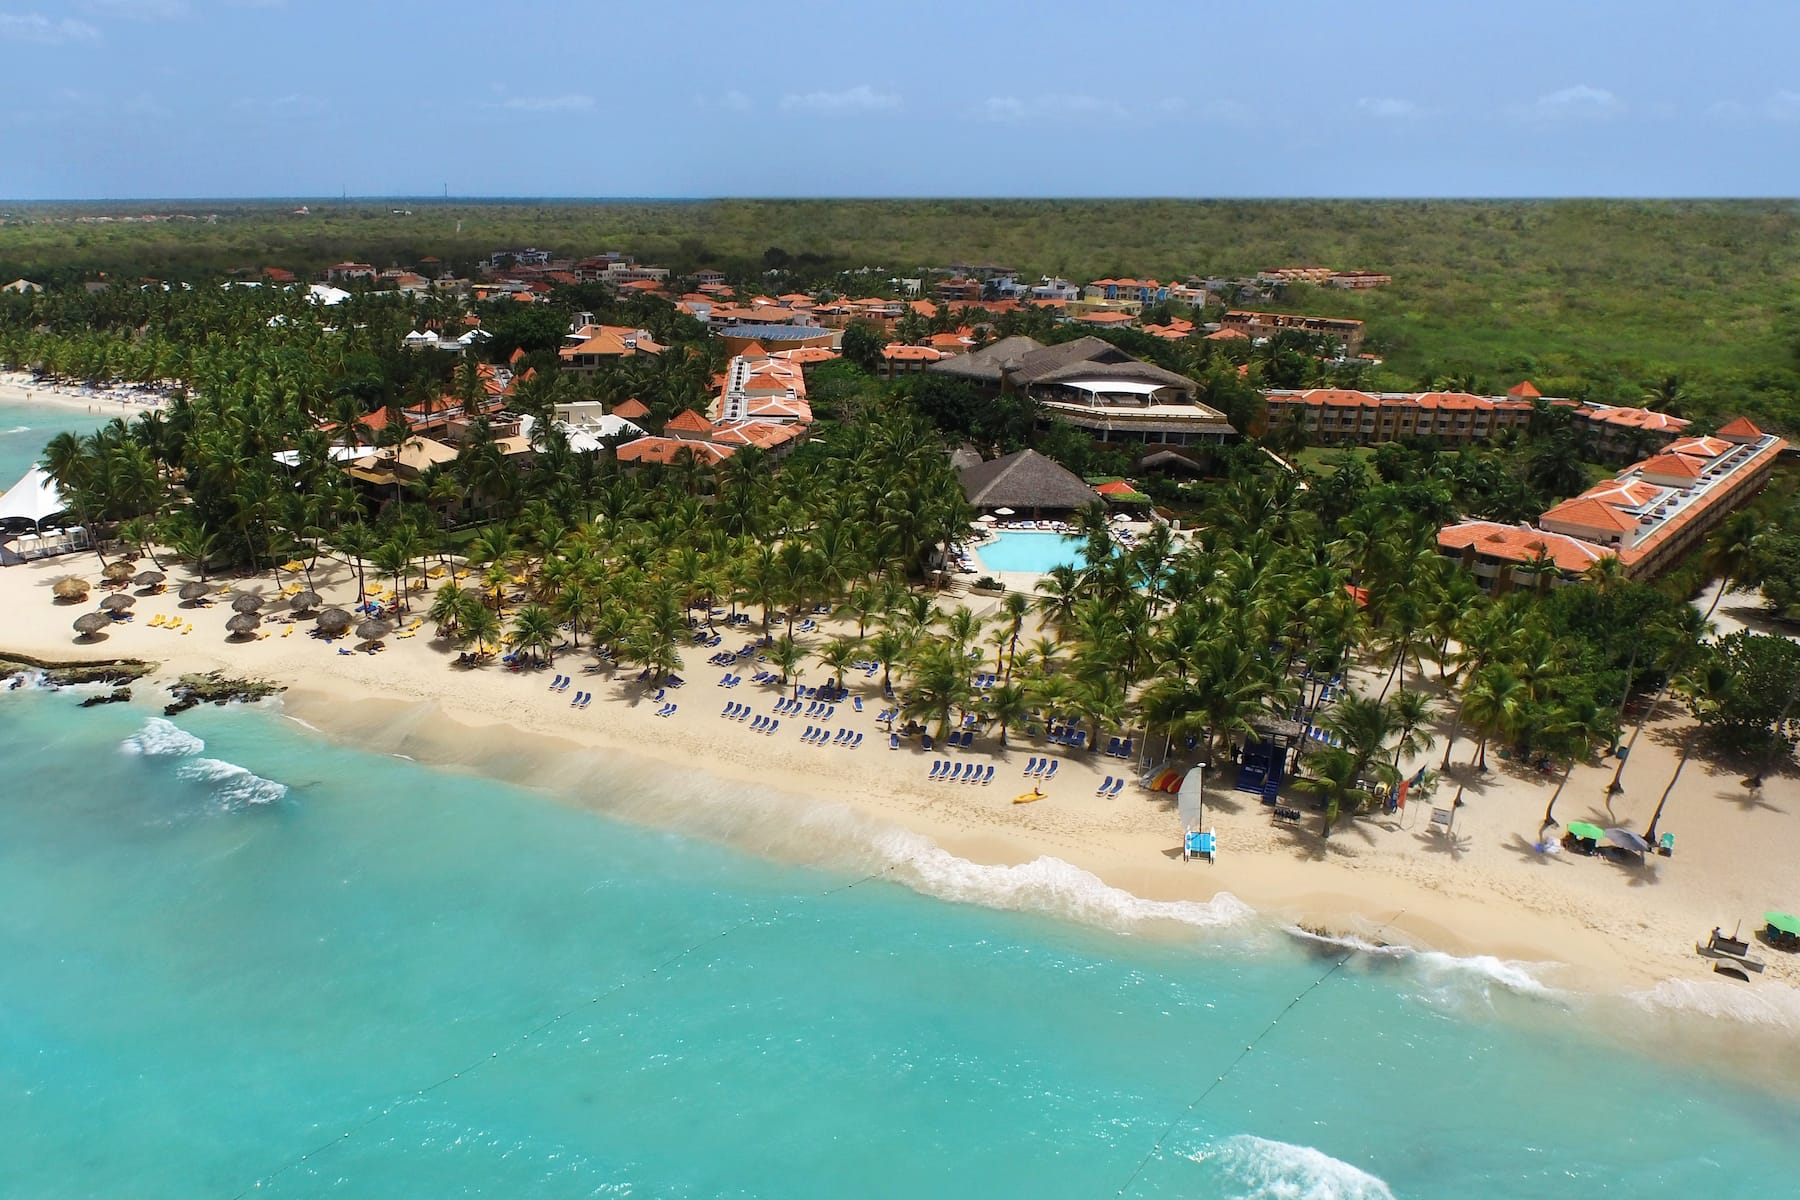 Viva Wyndham Dominicus Palace - All- Inclusive Resort - La Romana, Dominican Republic